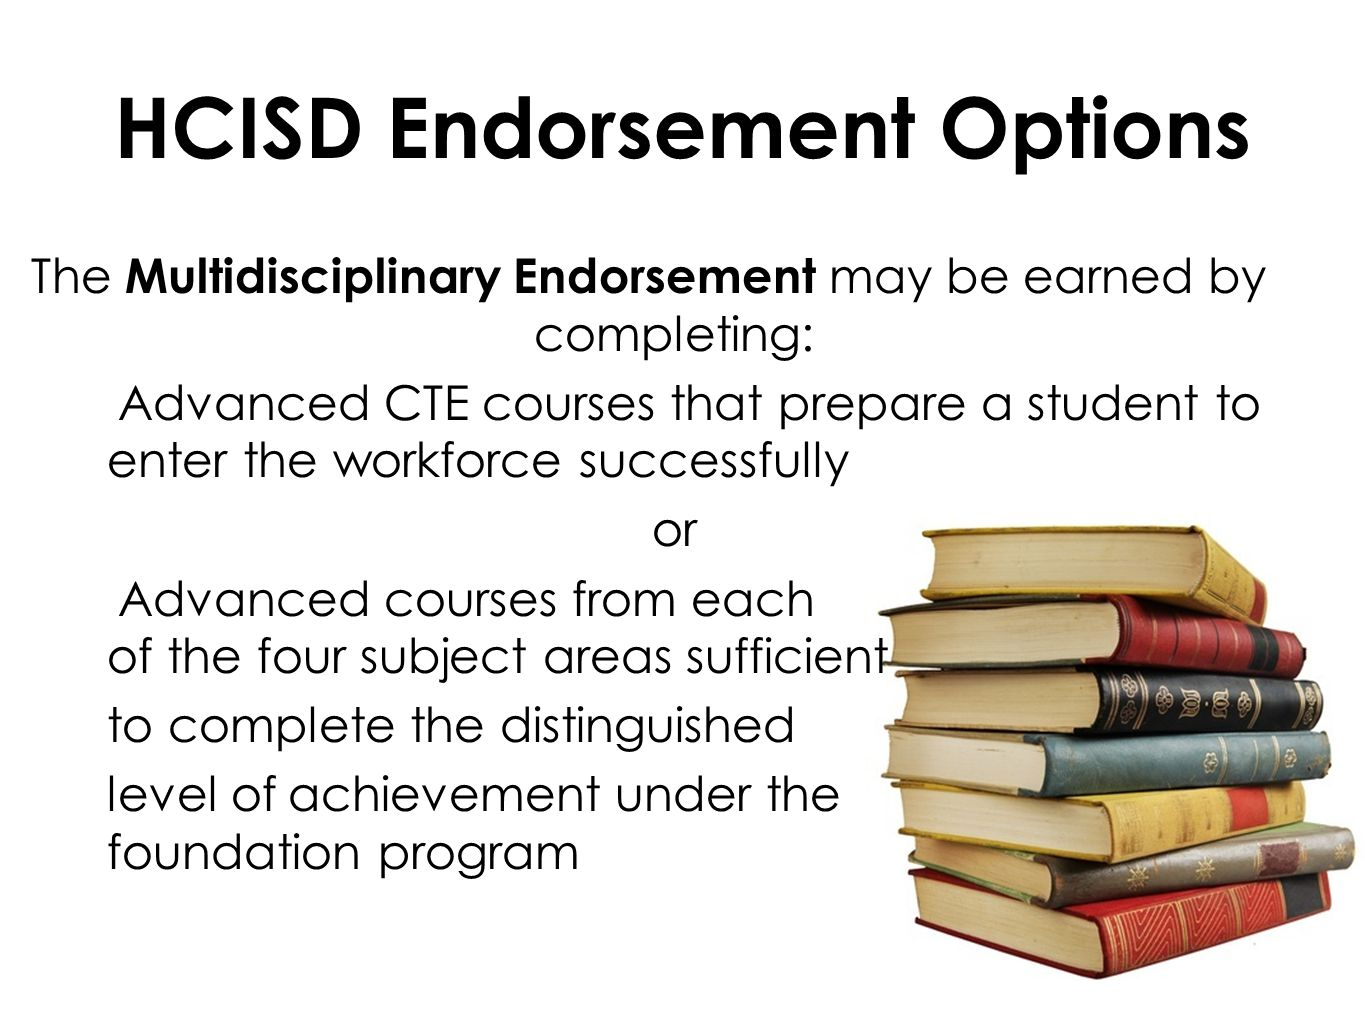 HCISD Endorsement Options The Multidisciplinary Endorsement may be earned by completing: Advanced CTE courses that prepare a student to enter the workforce successfully or Advanced courses from each of the four subject areas sufficient to complete the distinguished level of achievement under the foundation program